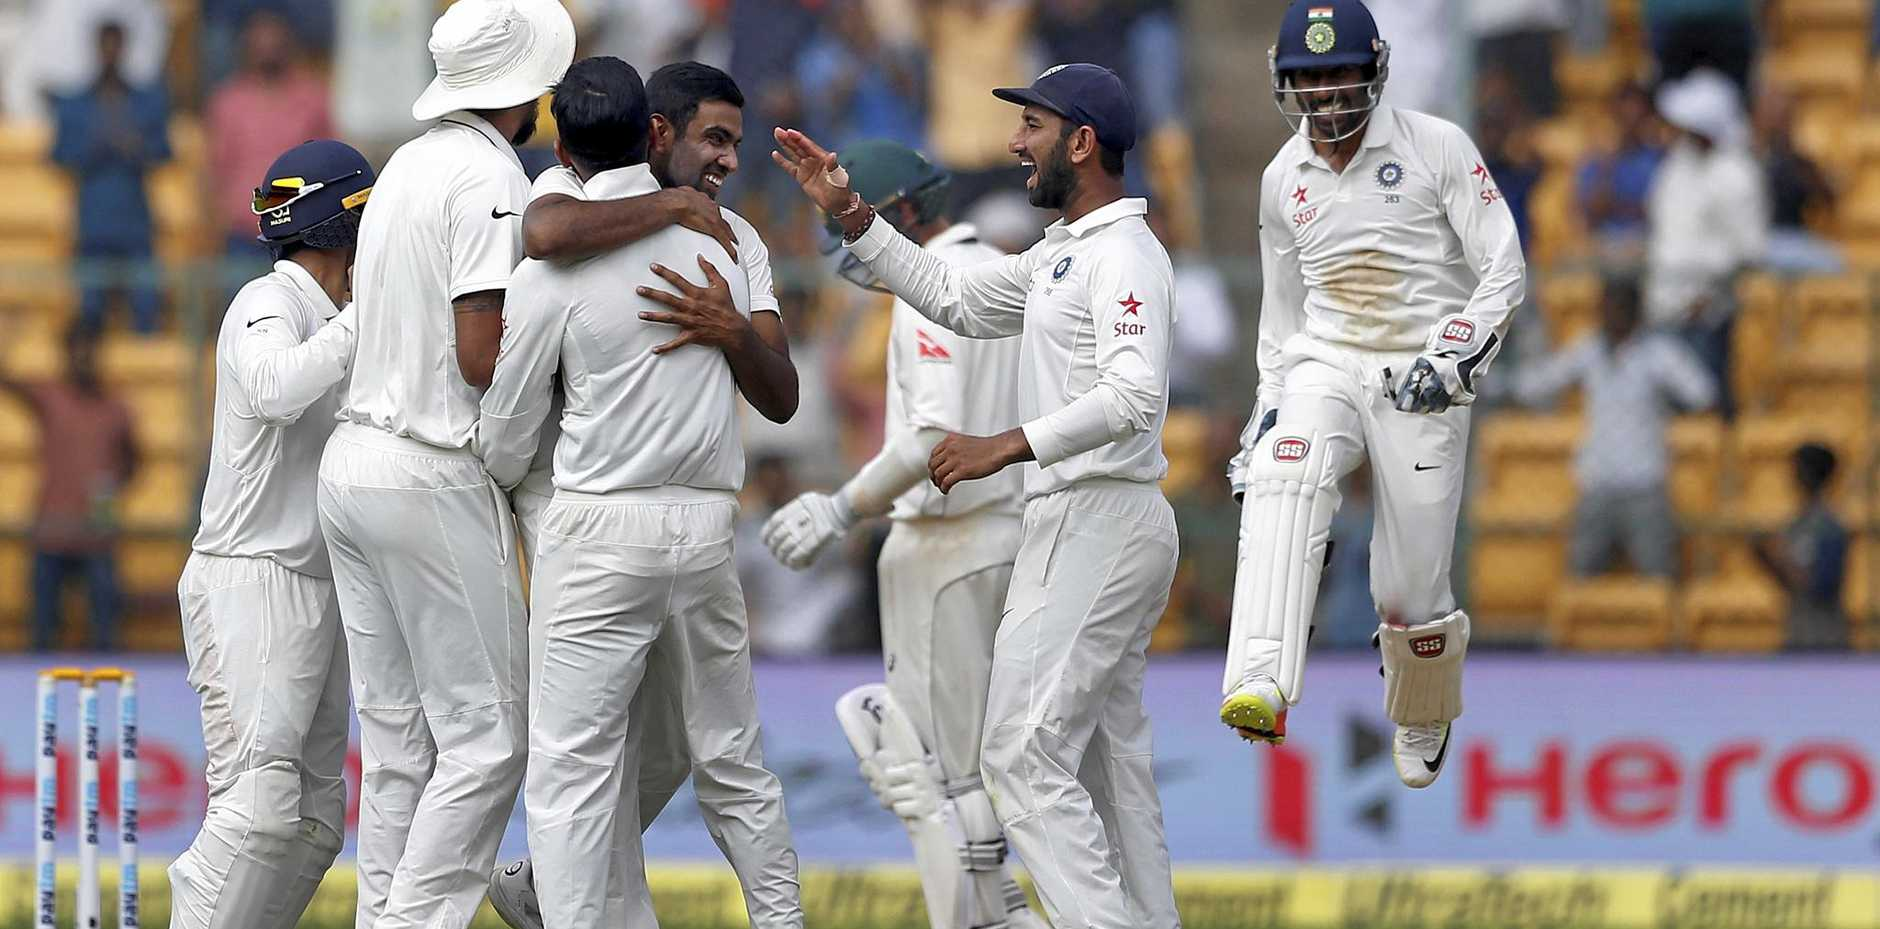 India celebrates the dismissal of Australia's Peter Handscomb during the fourth day of the second Test.